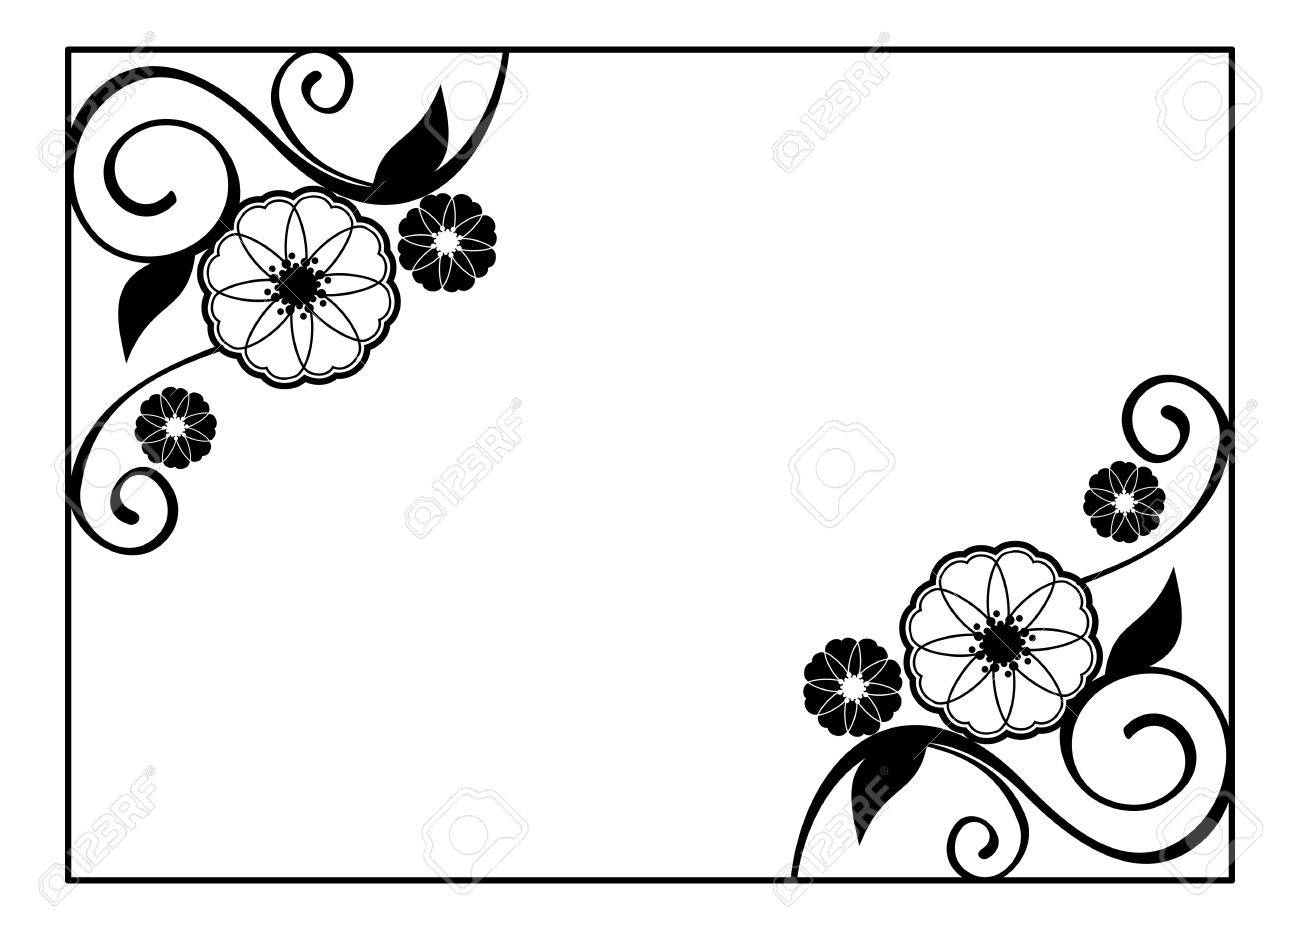 Vector frame wedding free clipart vector labs flower frame decorative black and white frame with floral elements rh 123rf com vintage wedding frame vector free junglespirit Images